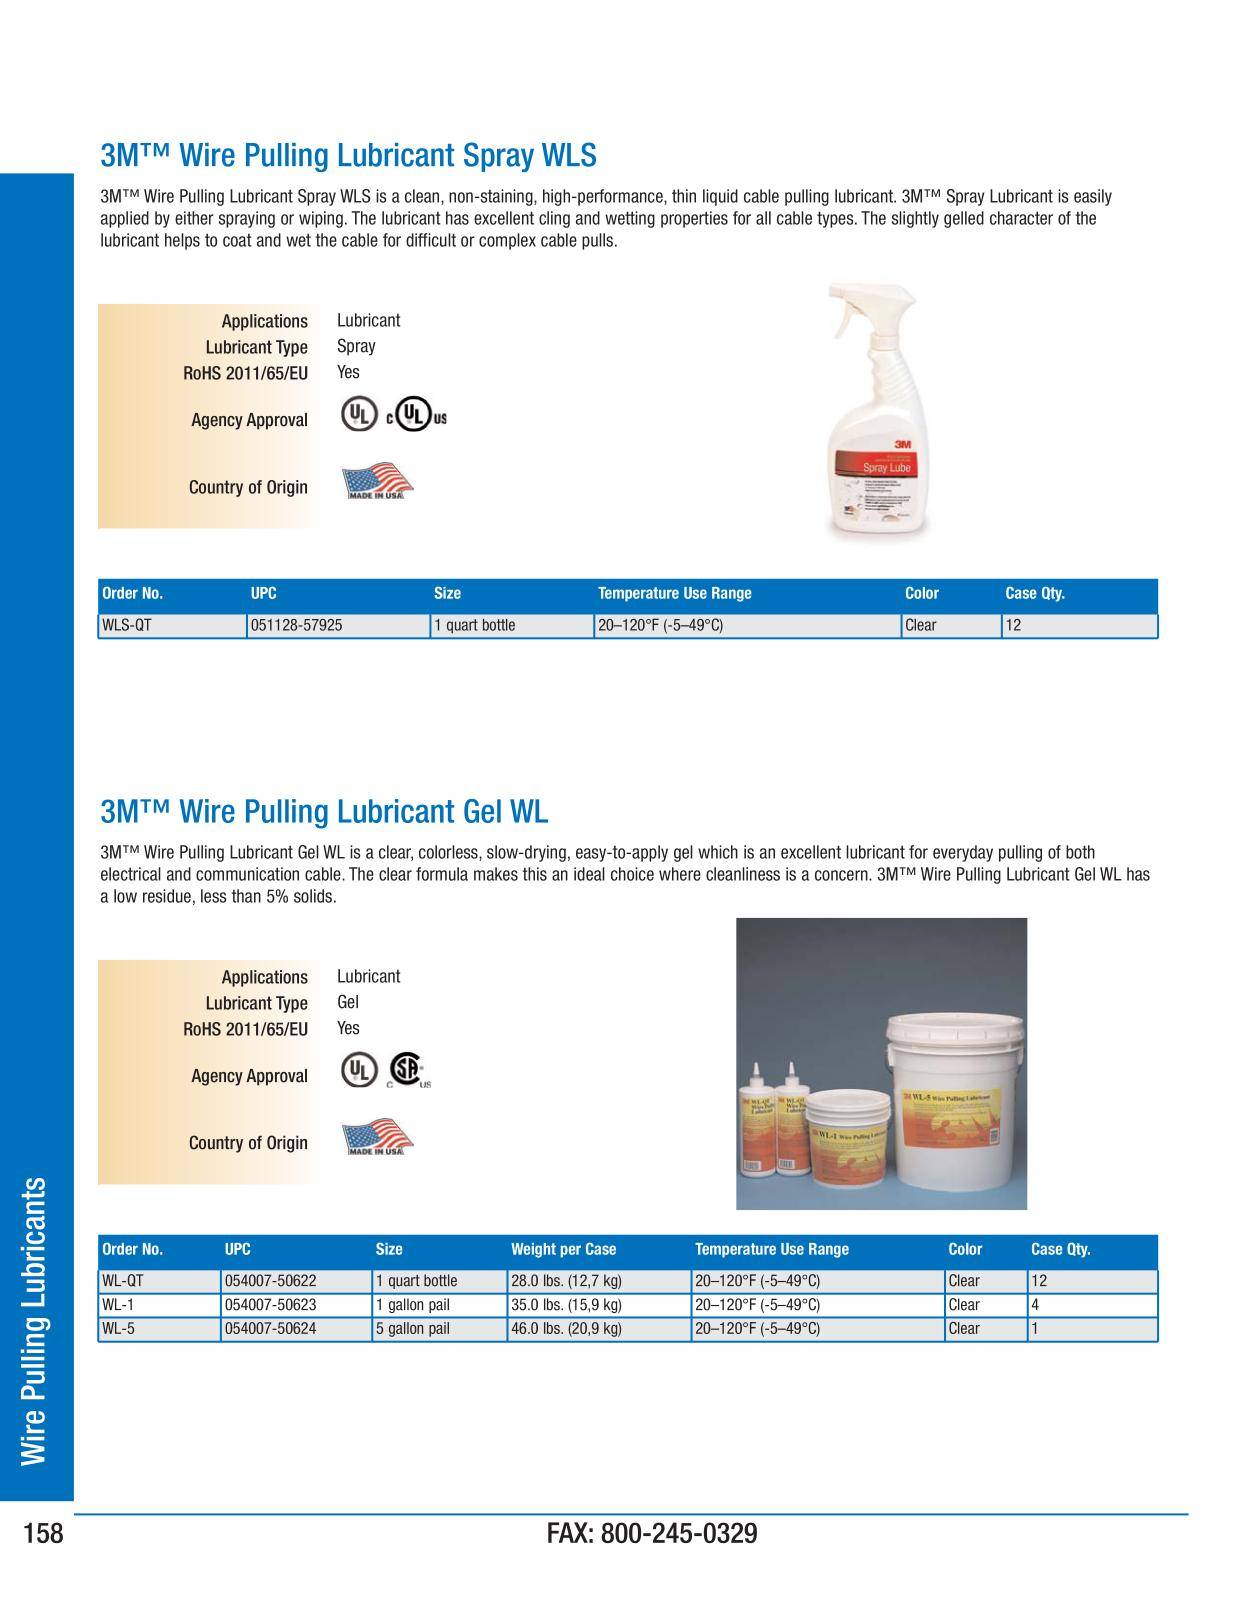 3m Electrical Products Page 158 Wire Pulling Lubricants Ideal